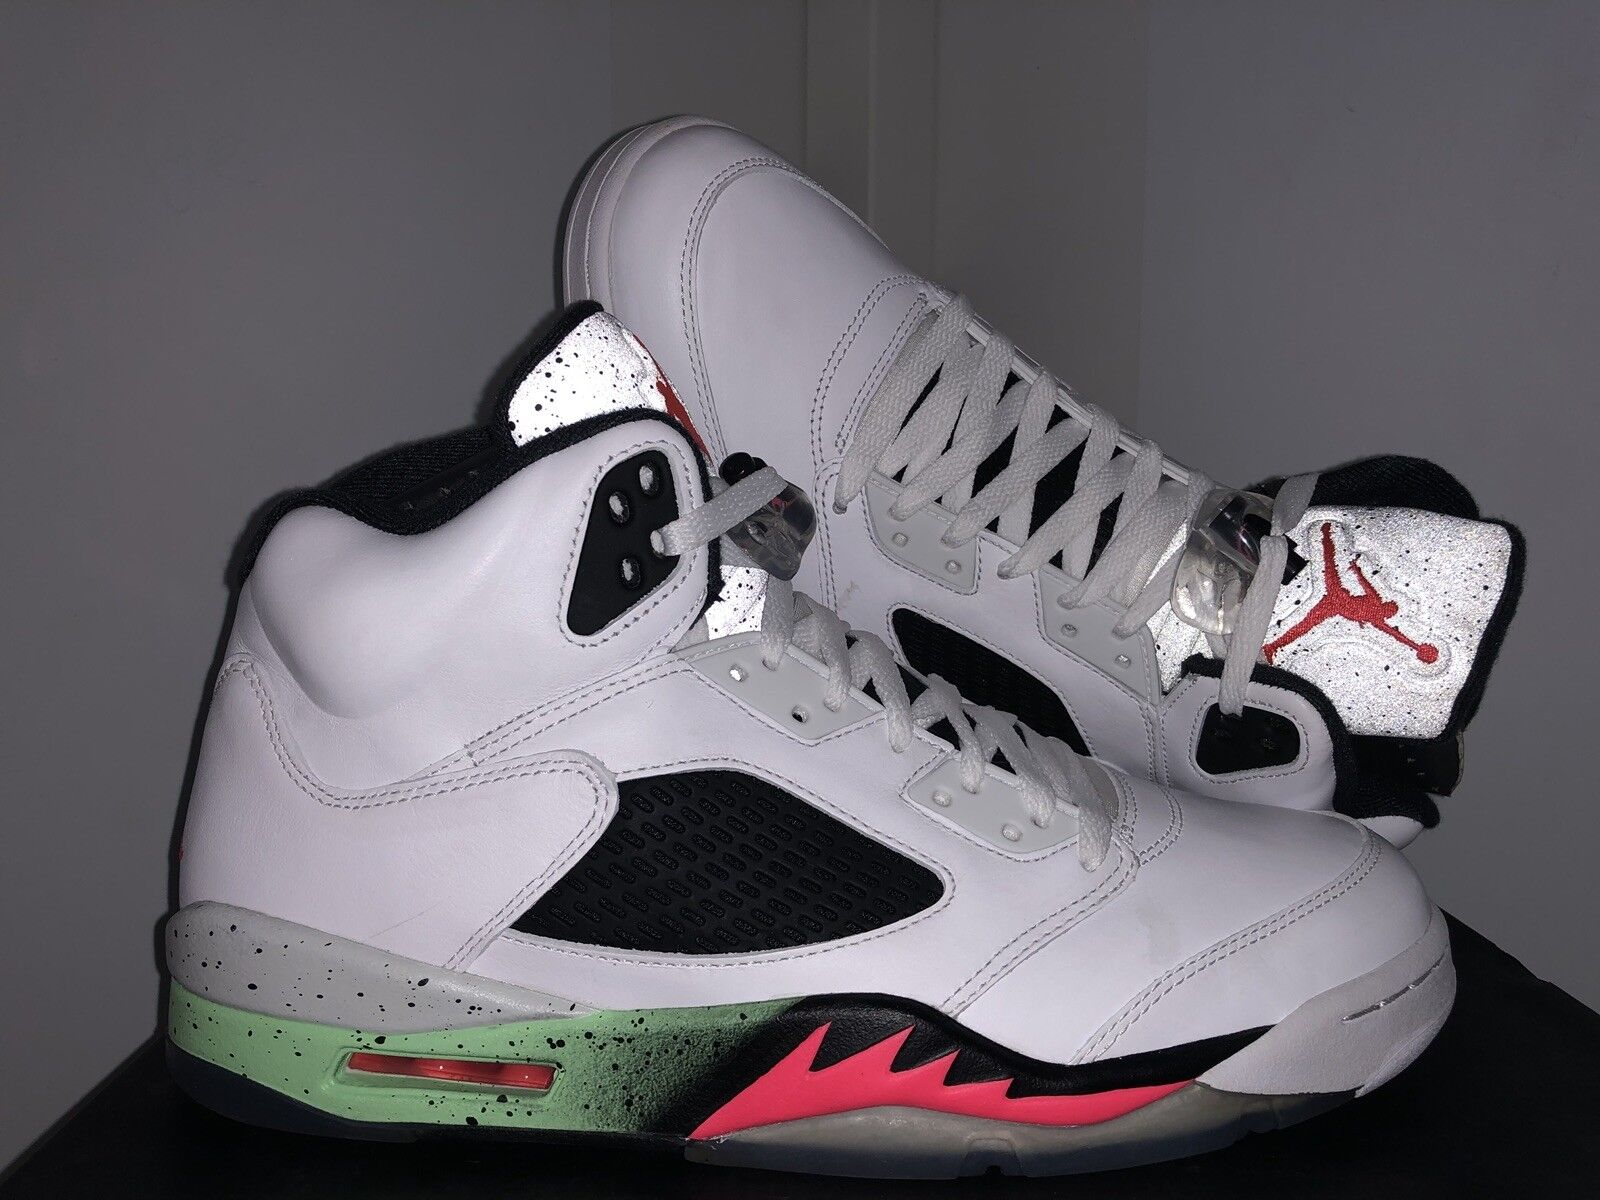 buy online 435a2 0a5e3 Air Jordan 5 V Retro Poison Green Green Green Space Jam Mcfly Mag DB PE OVO